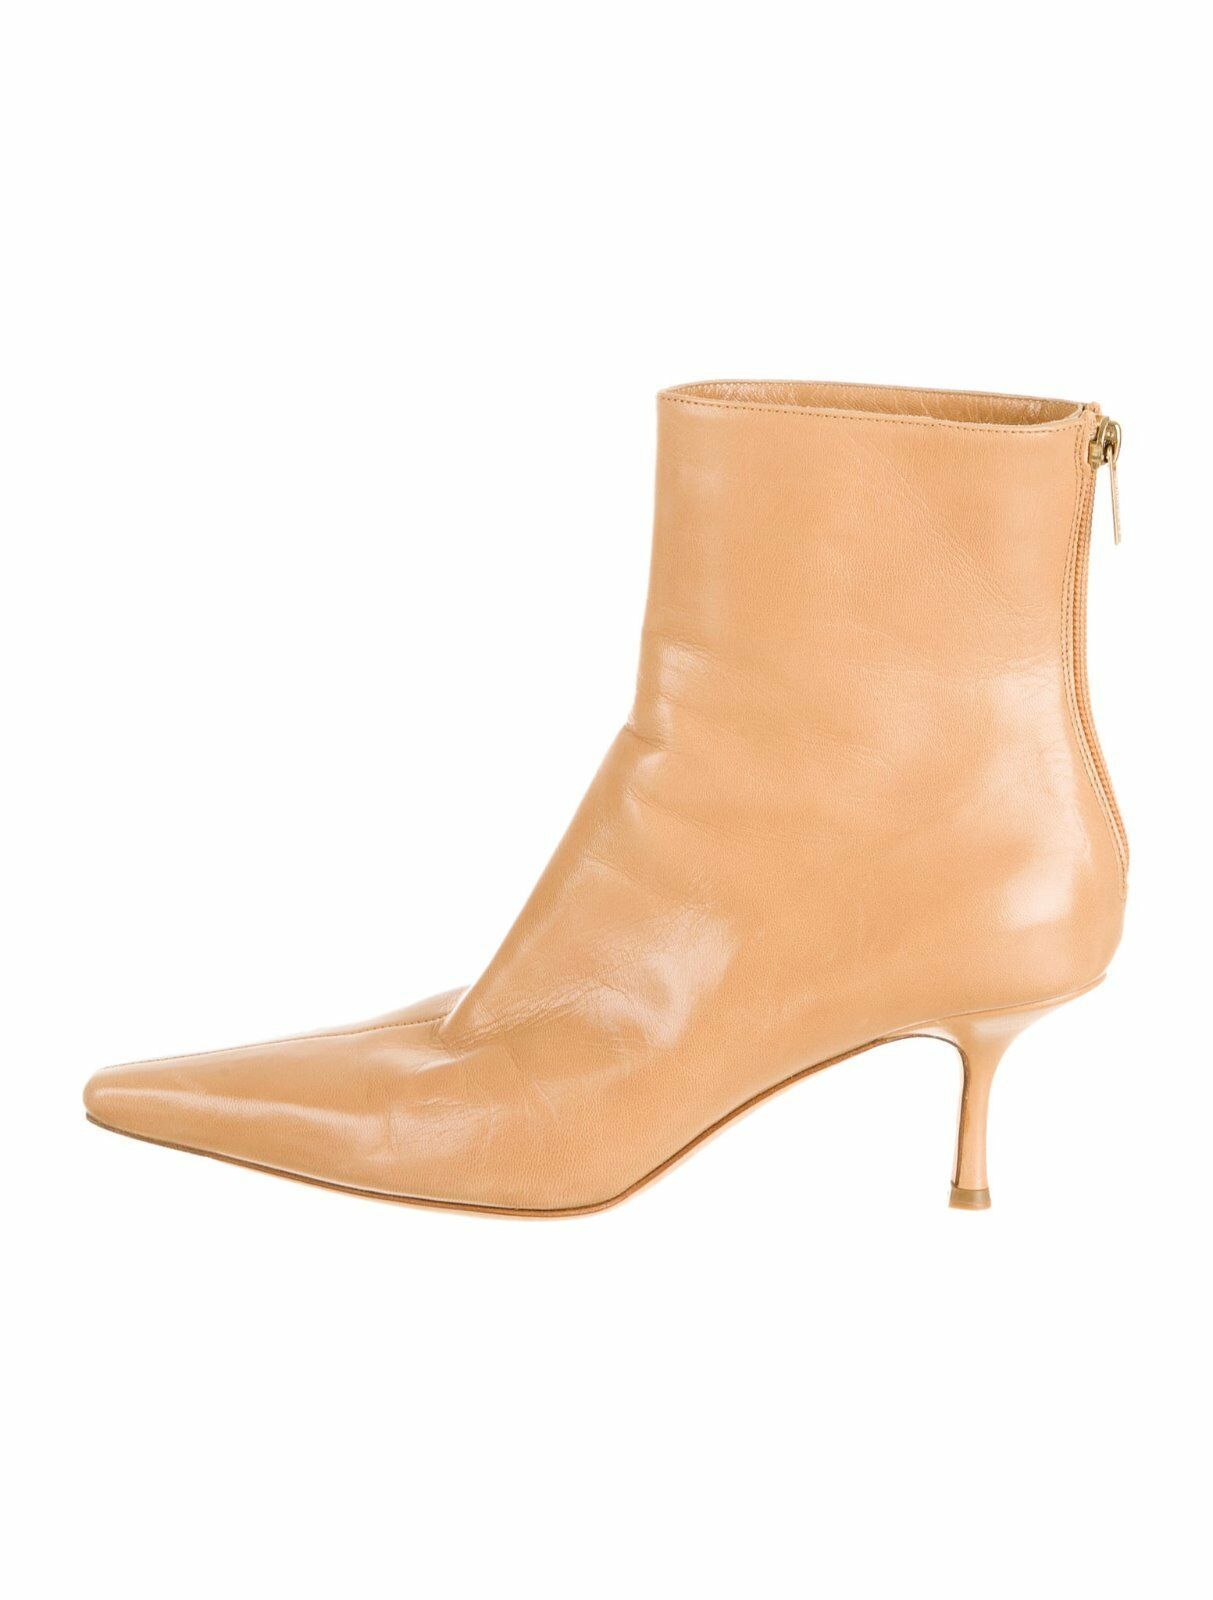 STUNNING BRAND NEW  1,075 JIMMY CHOO TAN LEATHER ANKLE BOOTS